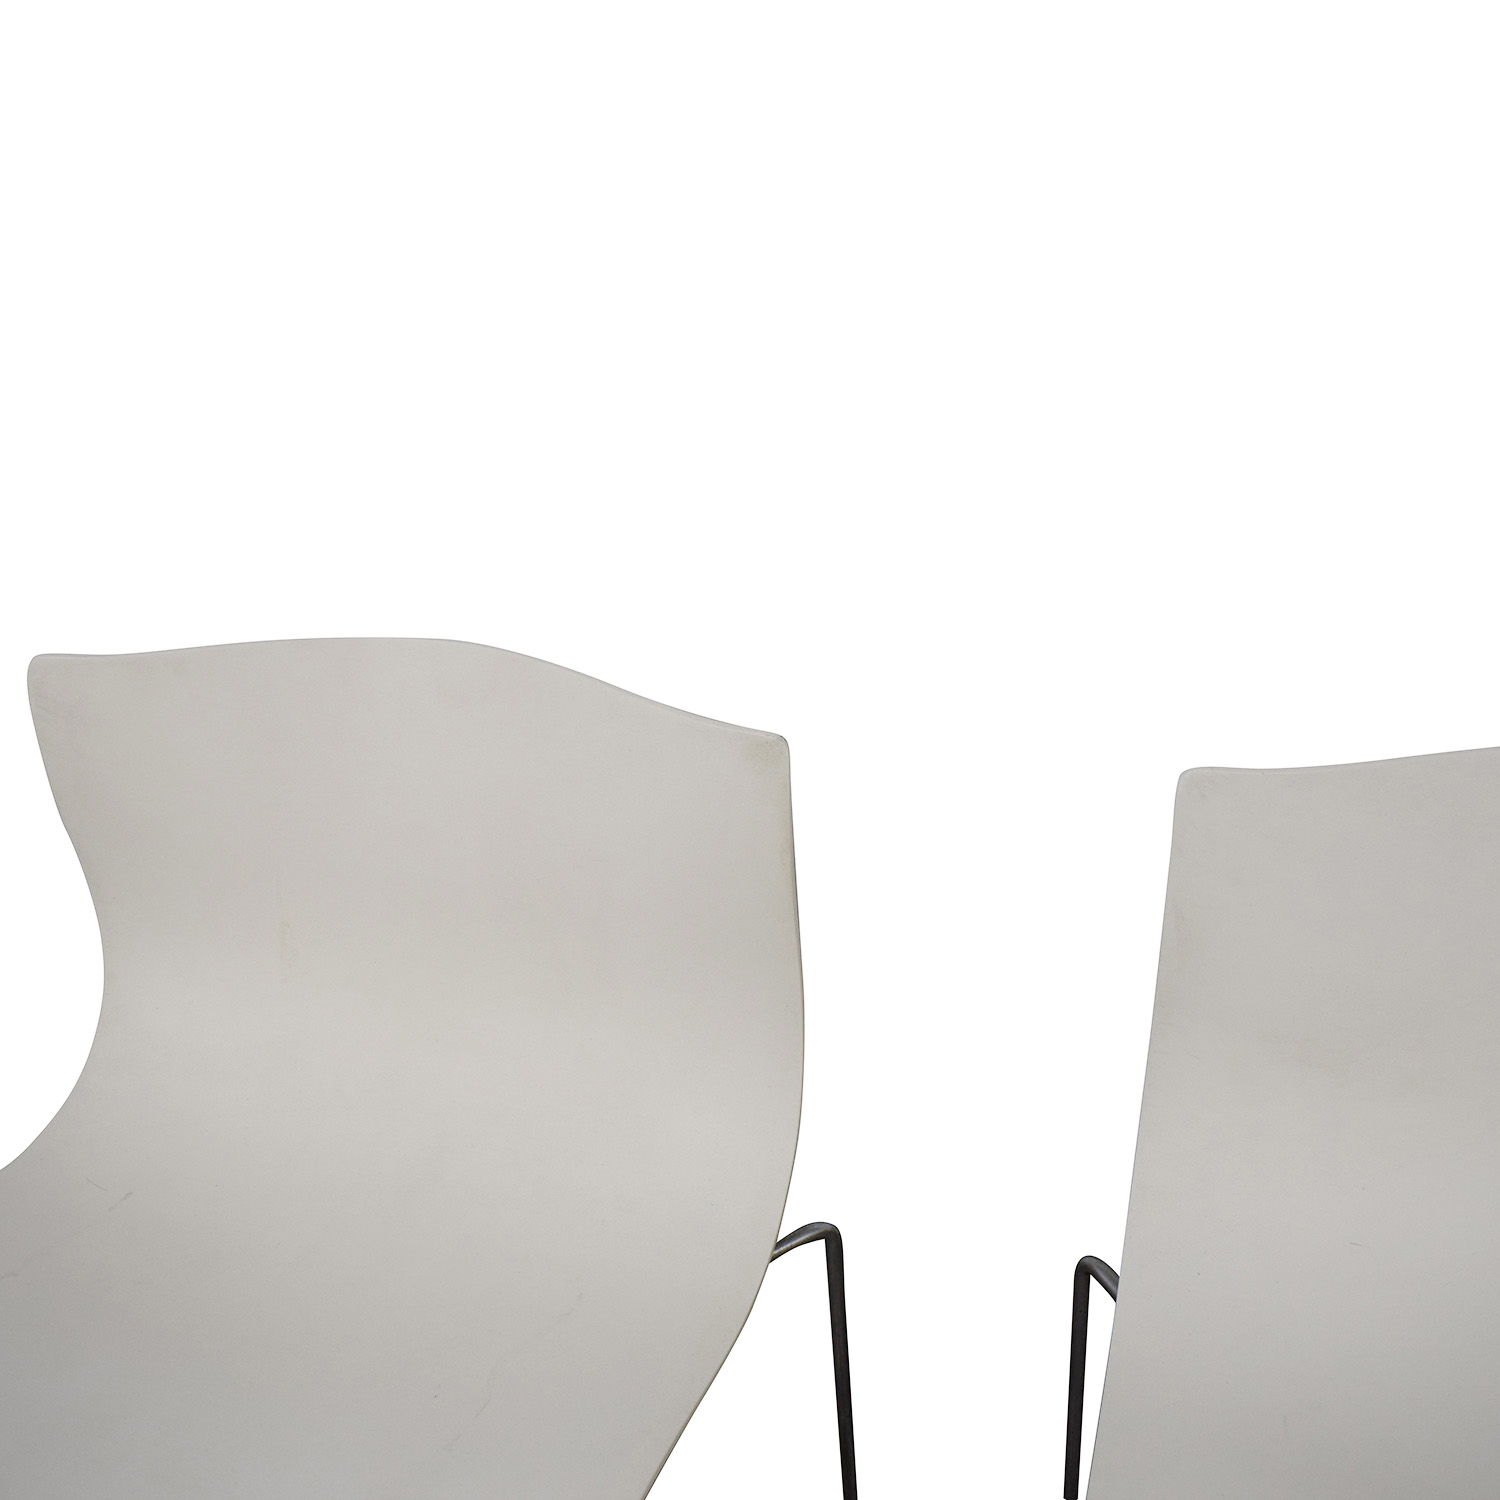 Knoll Knoll Vignelli Designs 1983 White Handkerchief Chairs used